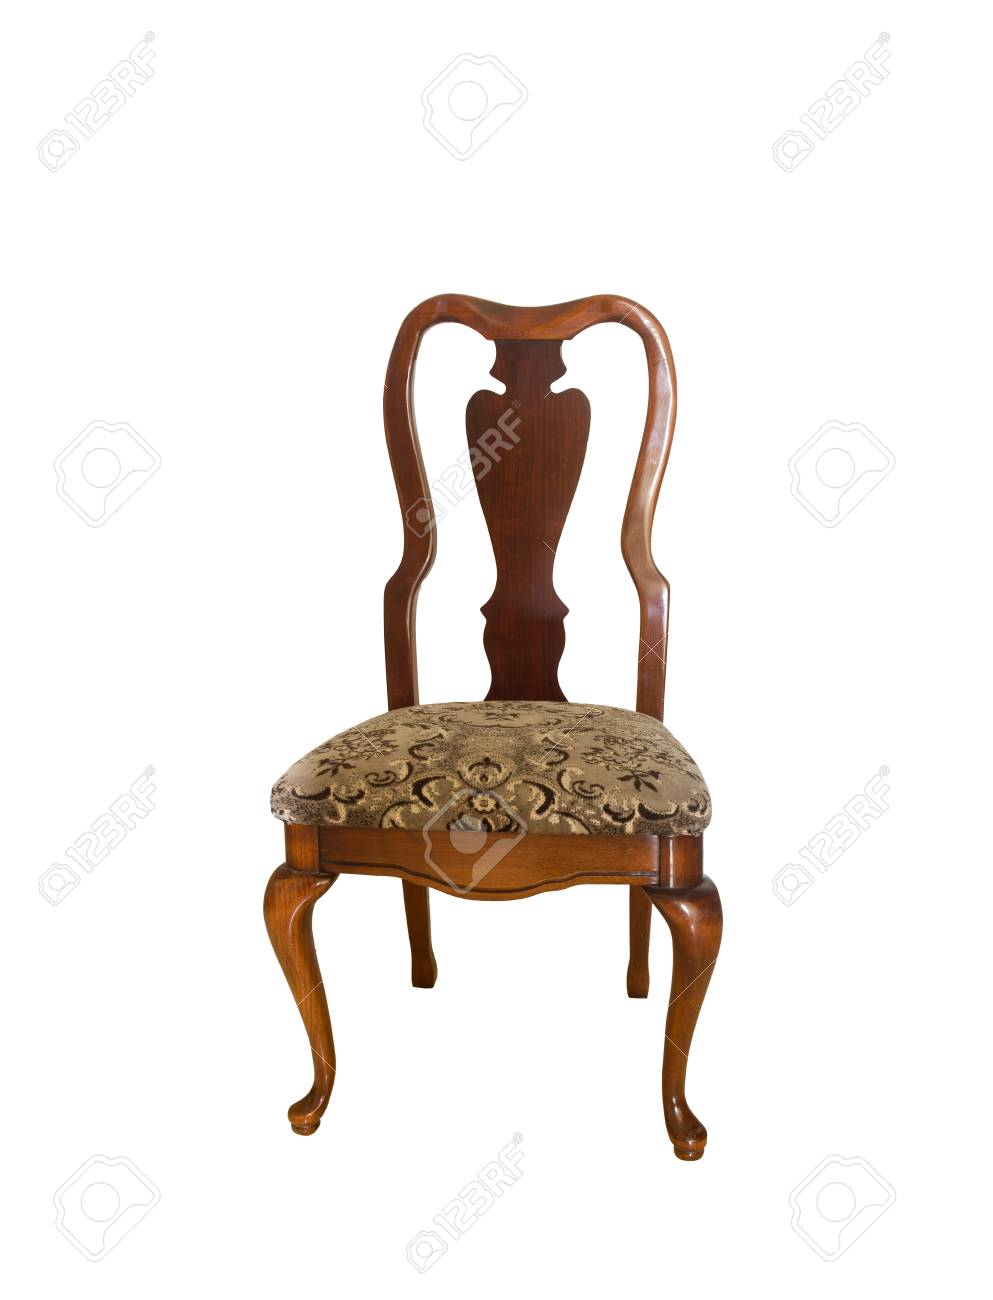 Ordinaire Retro Style Chairs For Interior Room Stock Photo   16770089